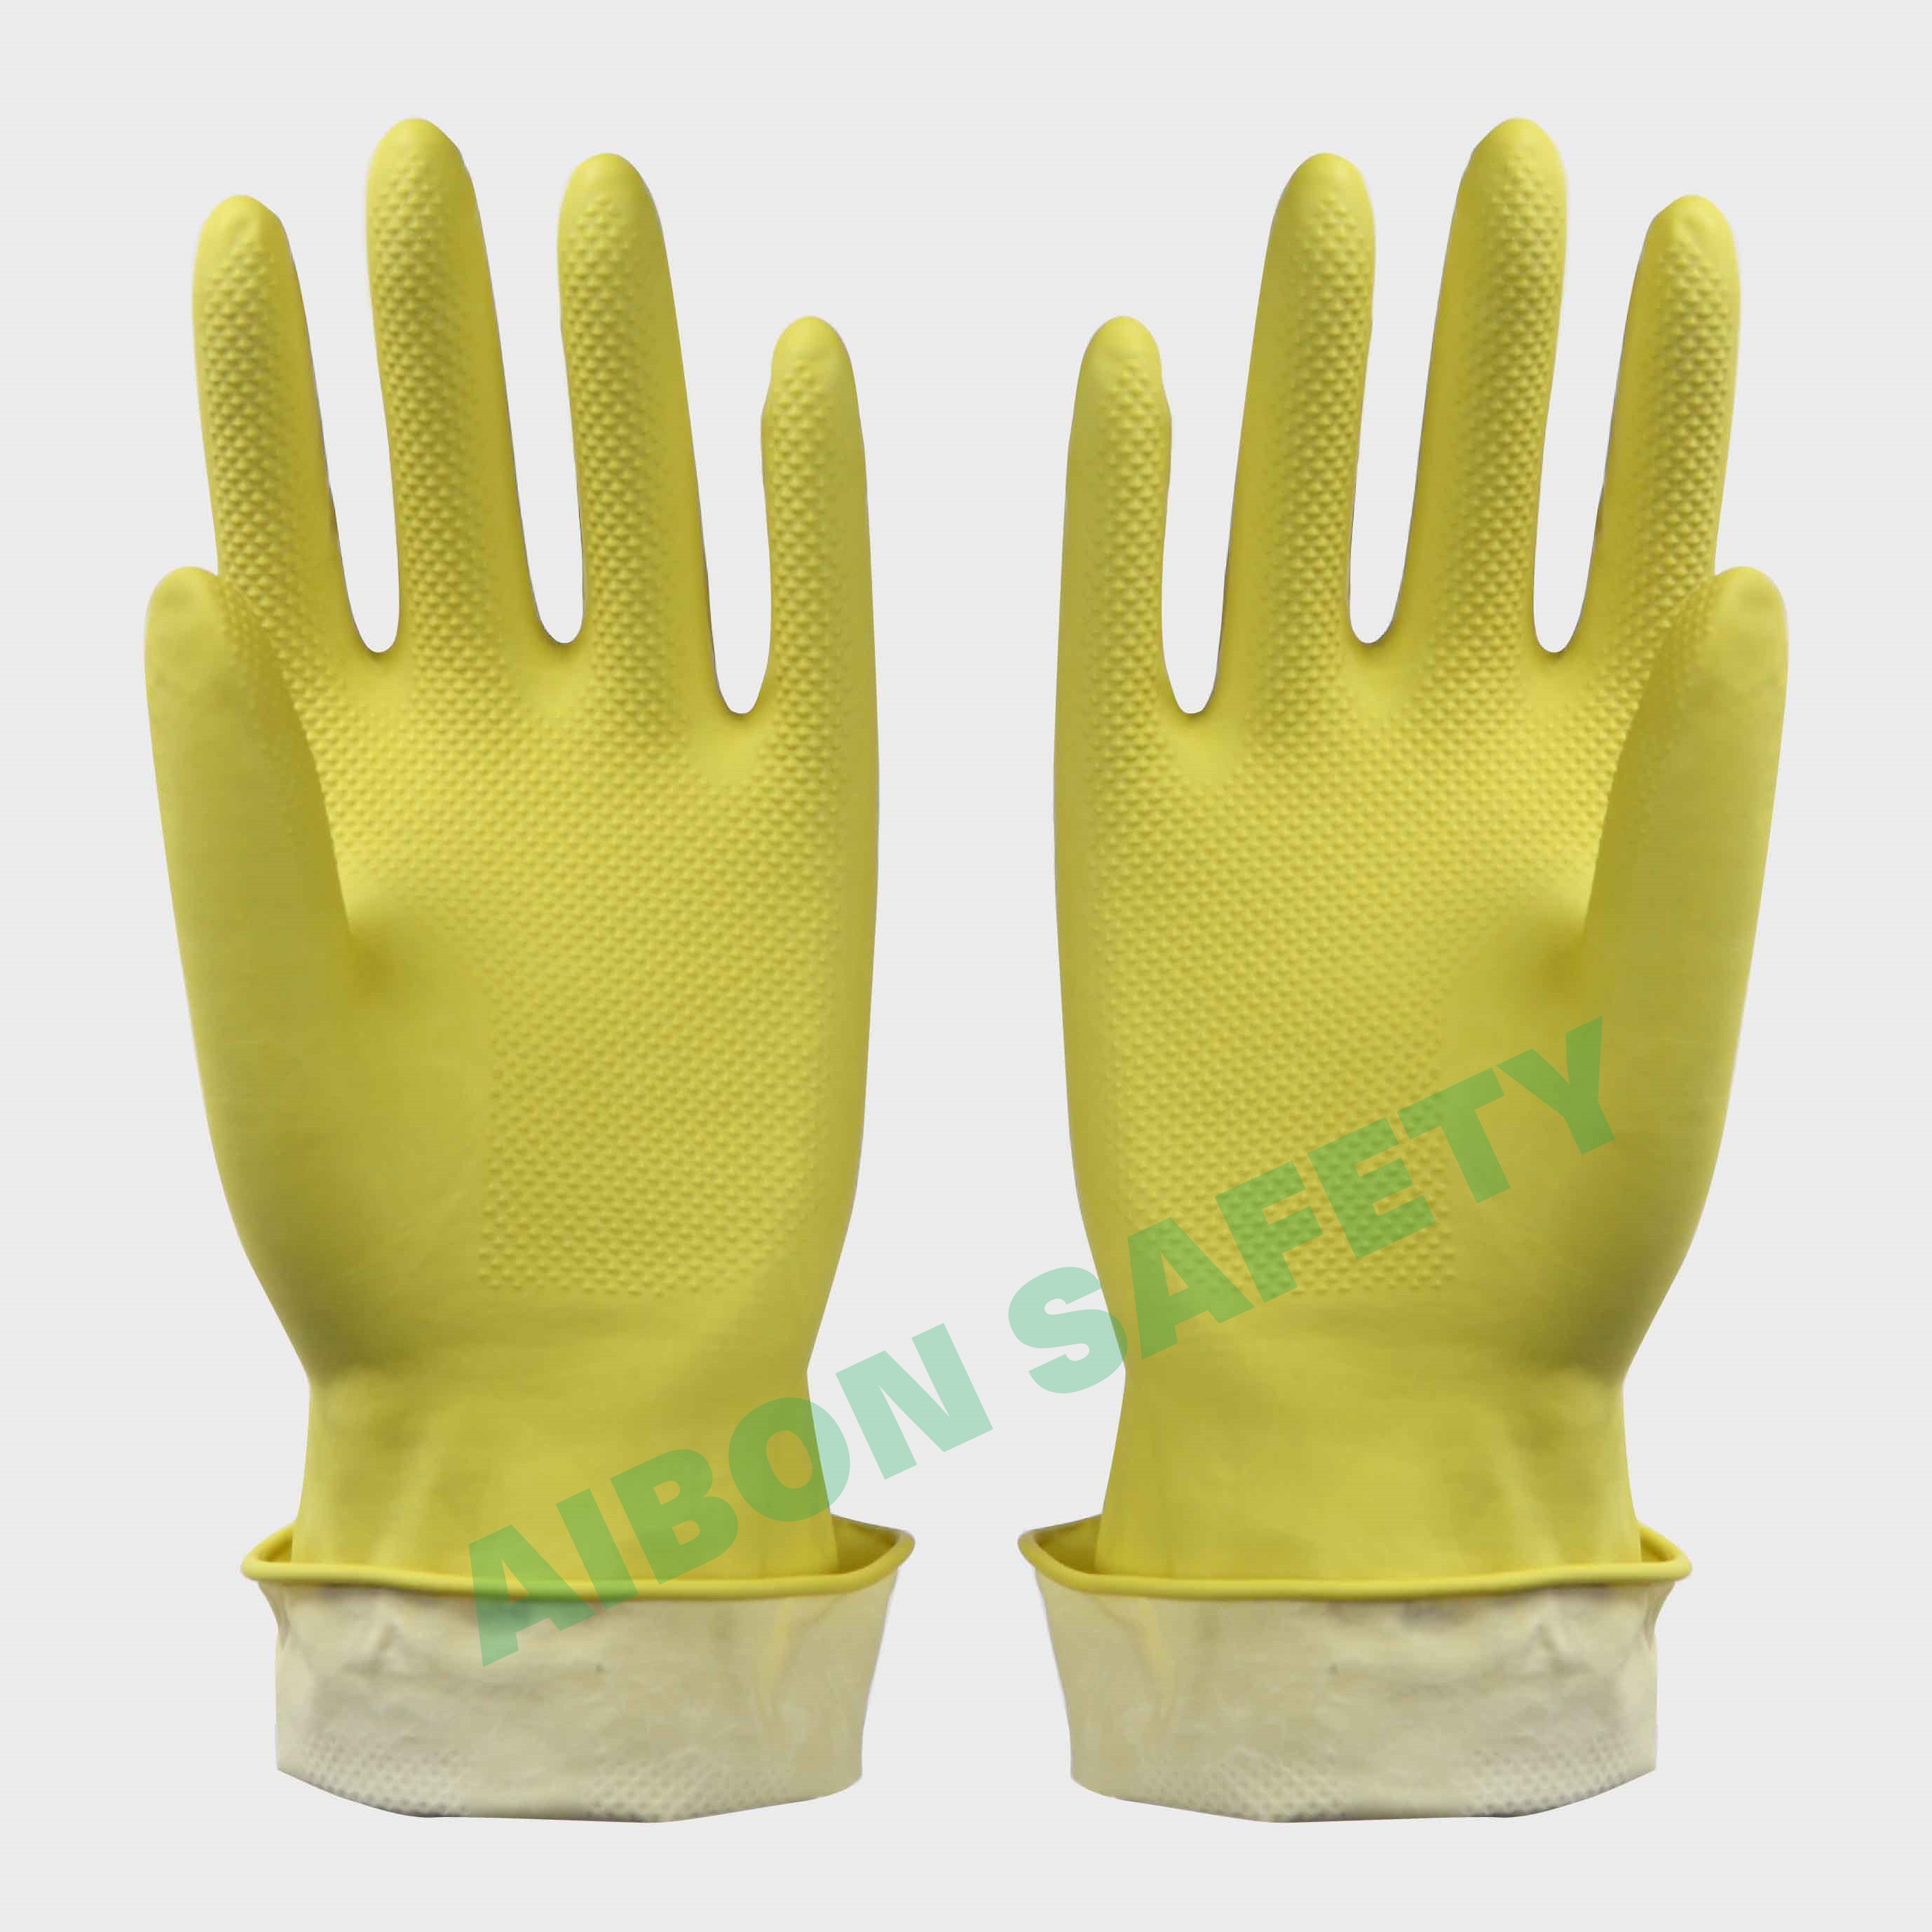 dip flocklined household rubber glove